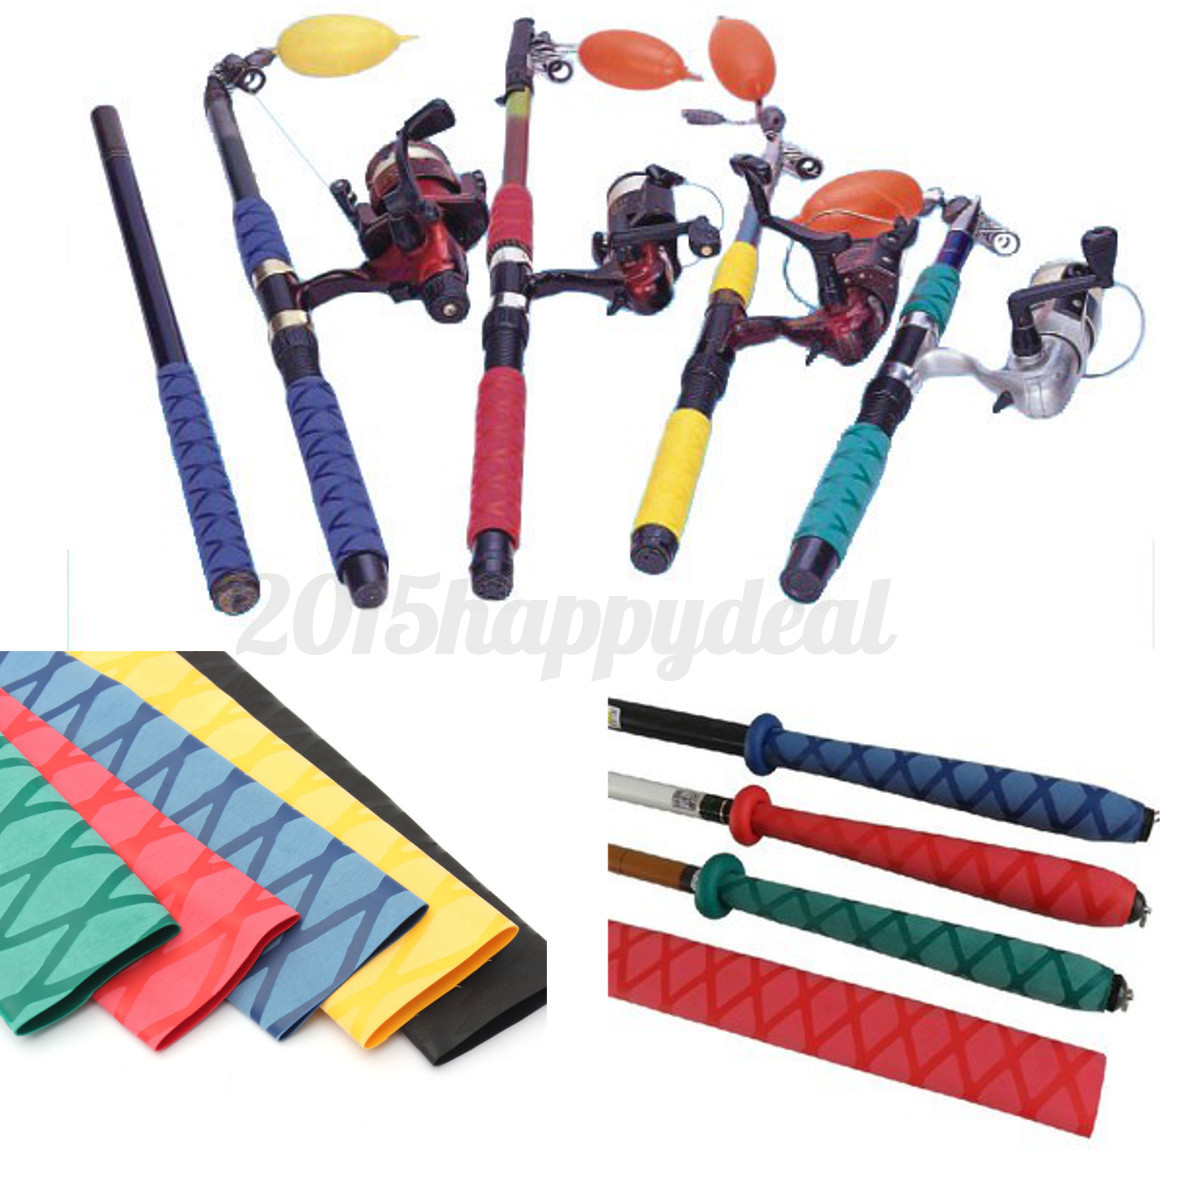 Non slip heat shrink tubing grip fish tackle rod badminton for Fishing rod handle wrap